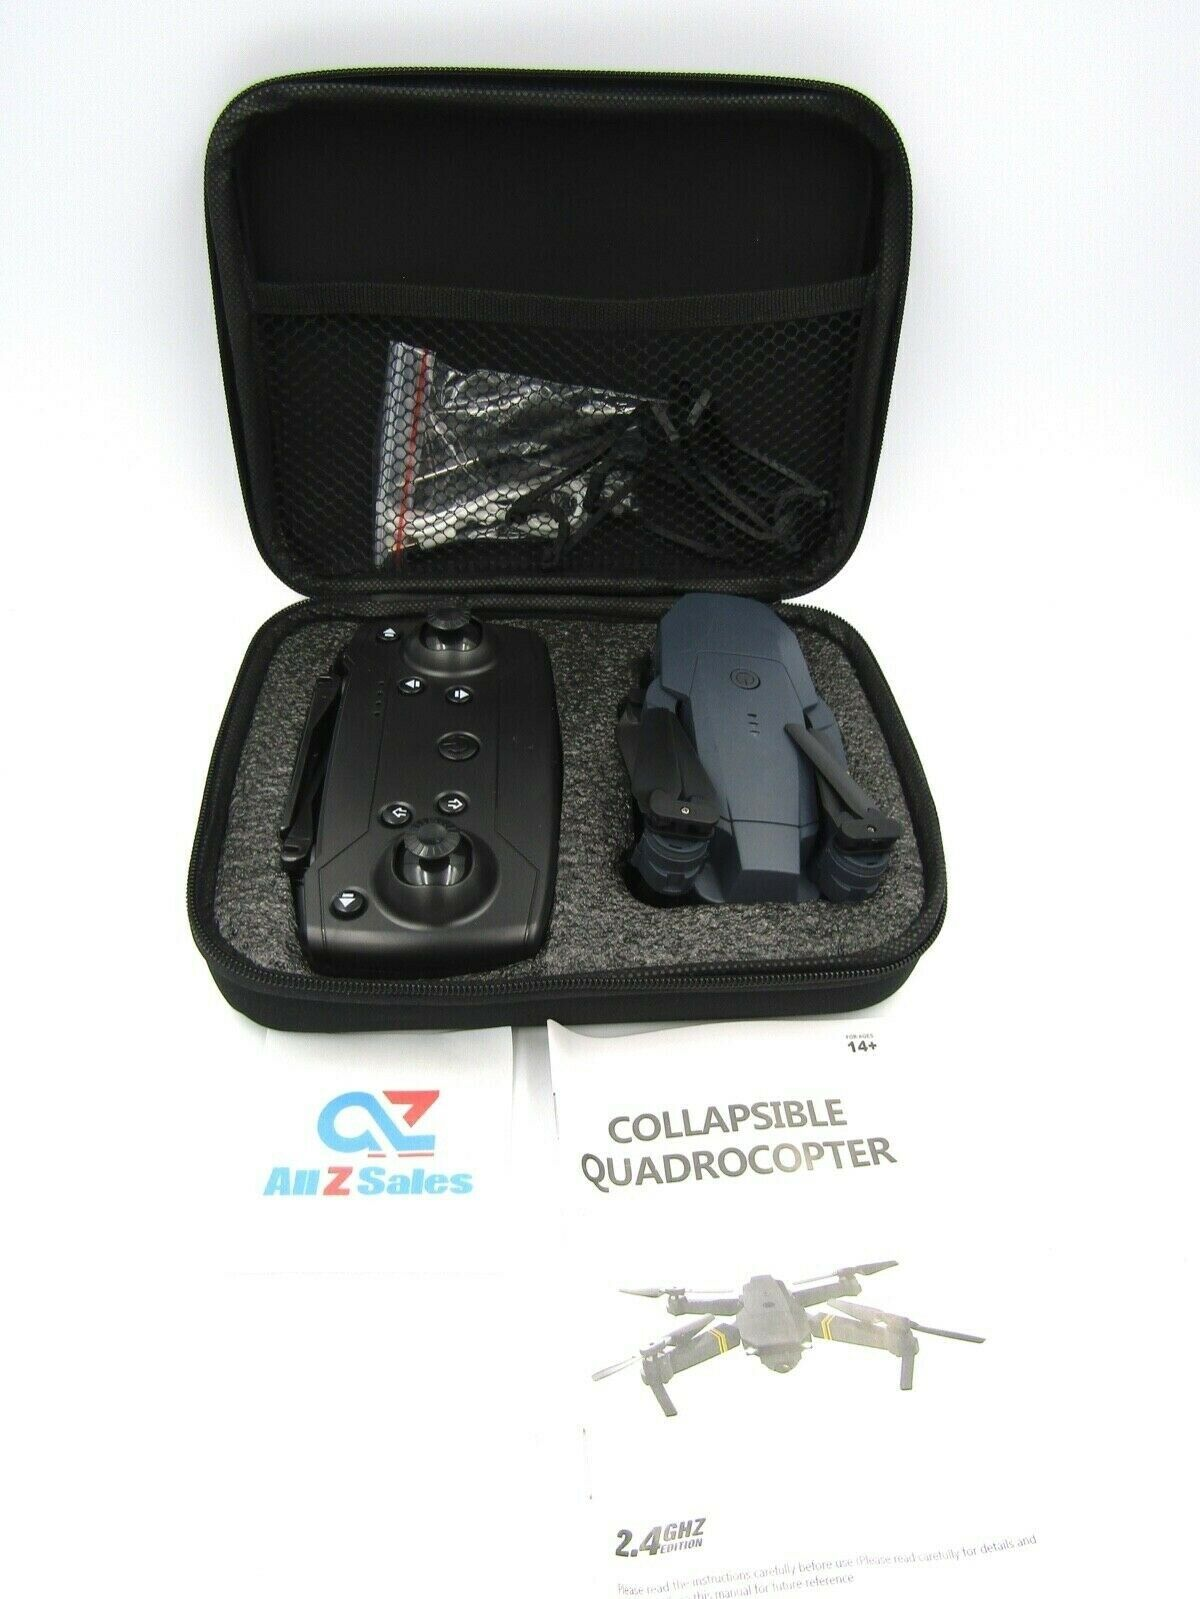 Primary image for Camera Mini Drone Collapsible Quadrocopter 2.4 GHz With Remote, QuadCopter - NEW